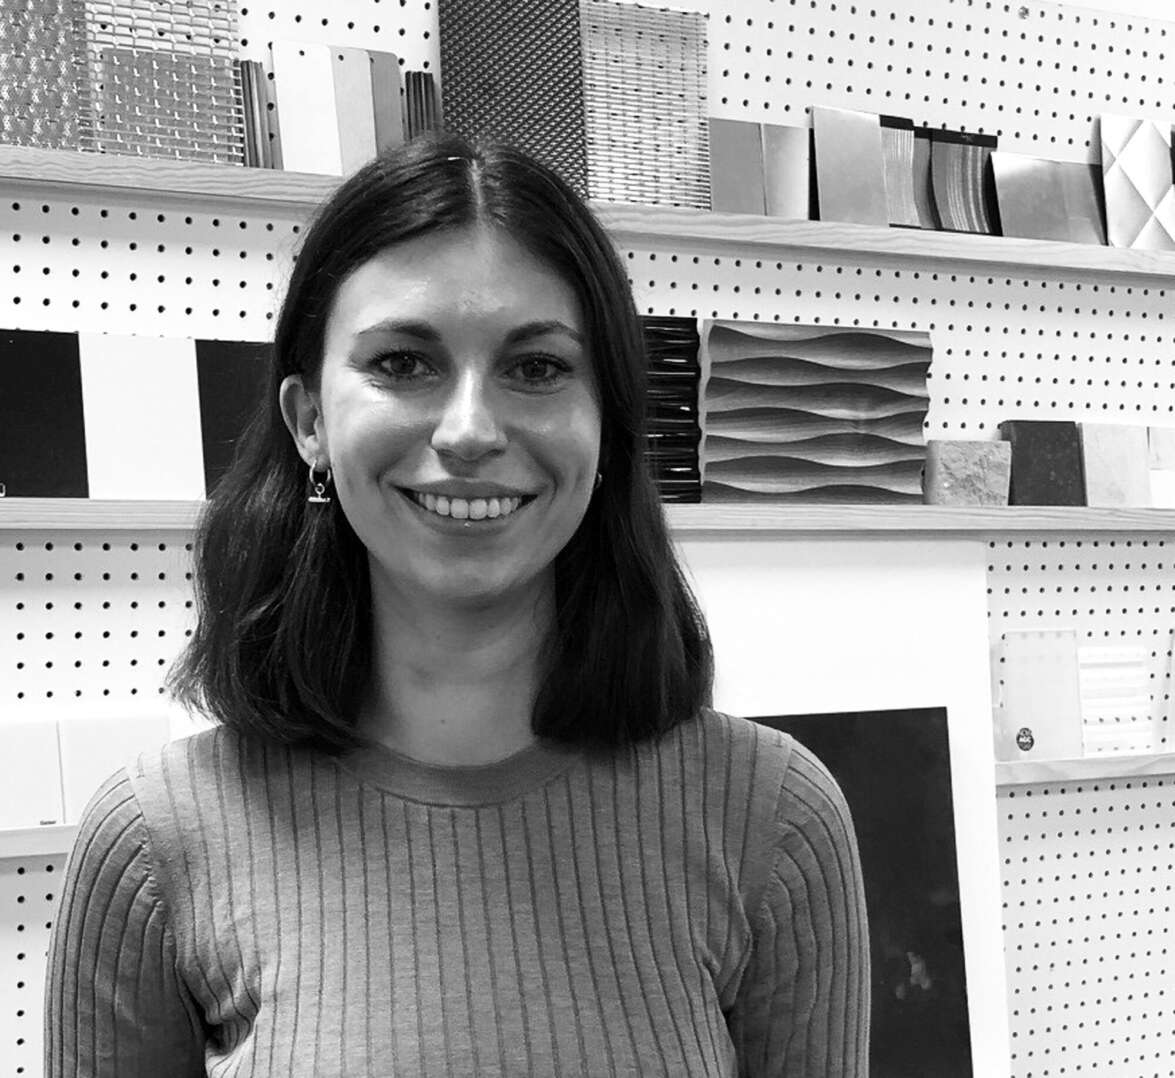 We welcome Anna Gritsch to our team